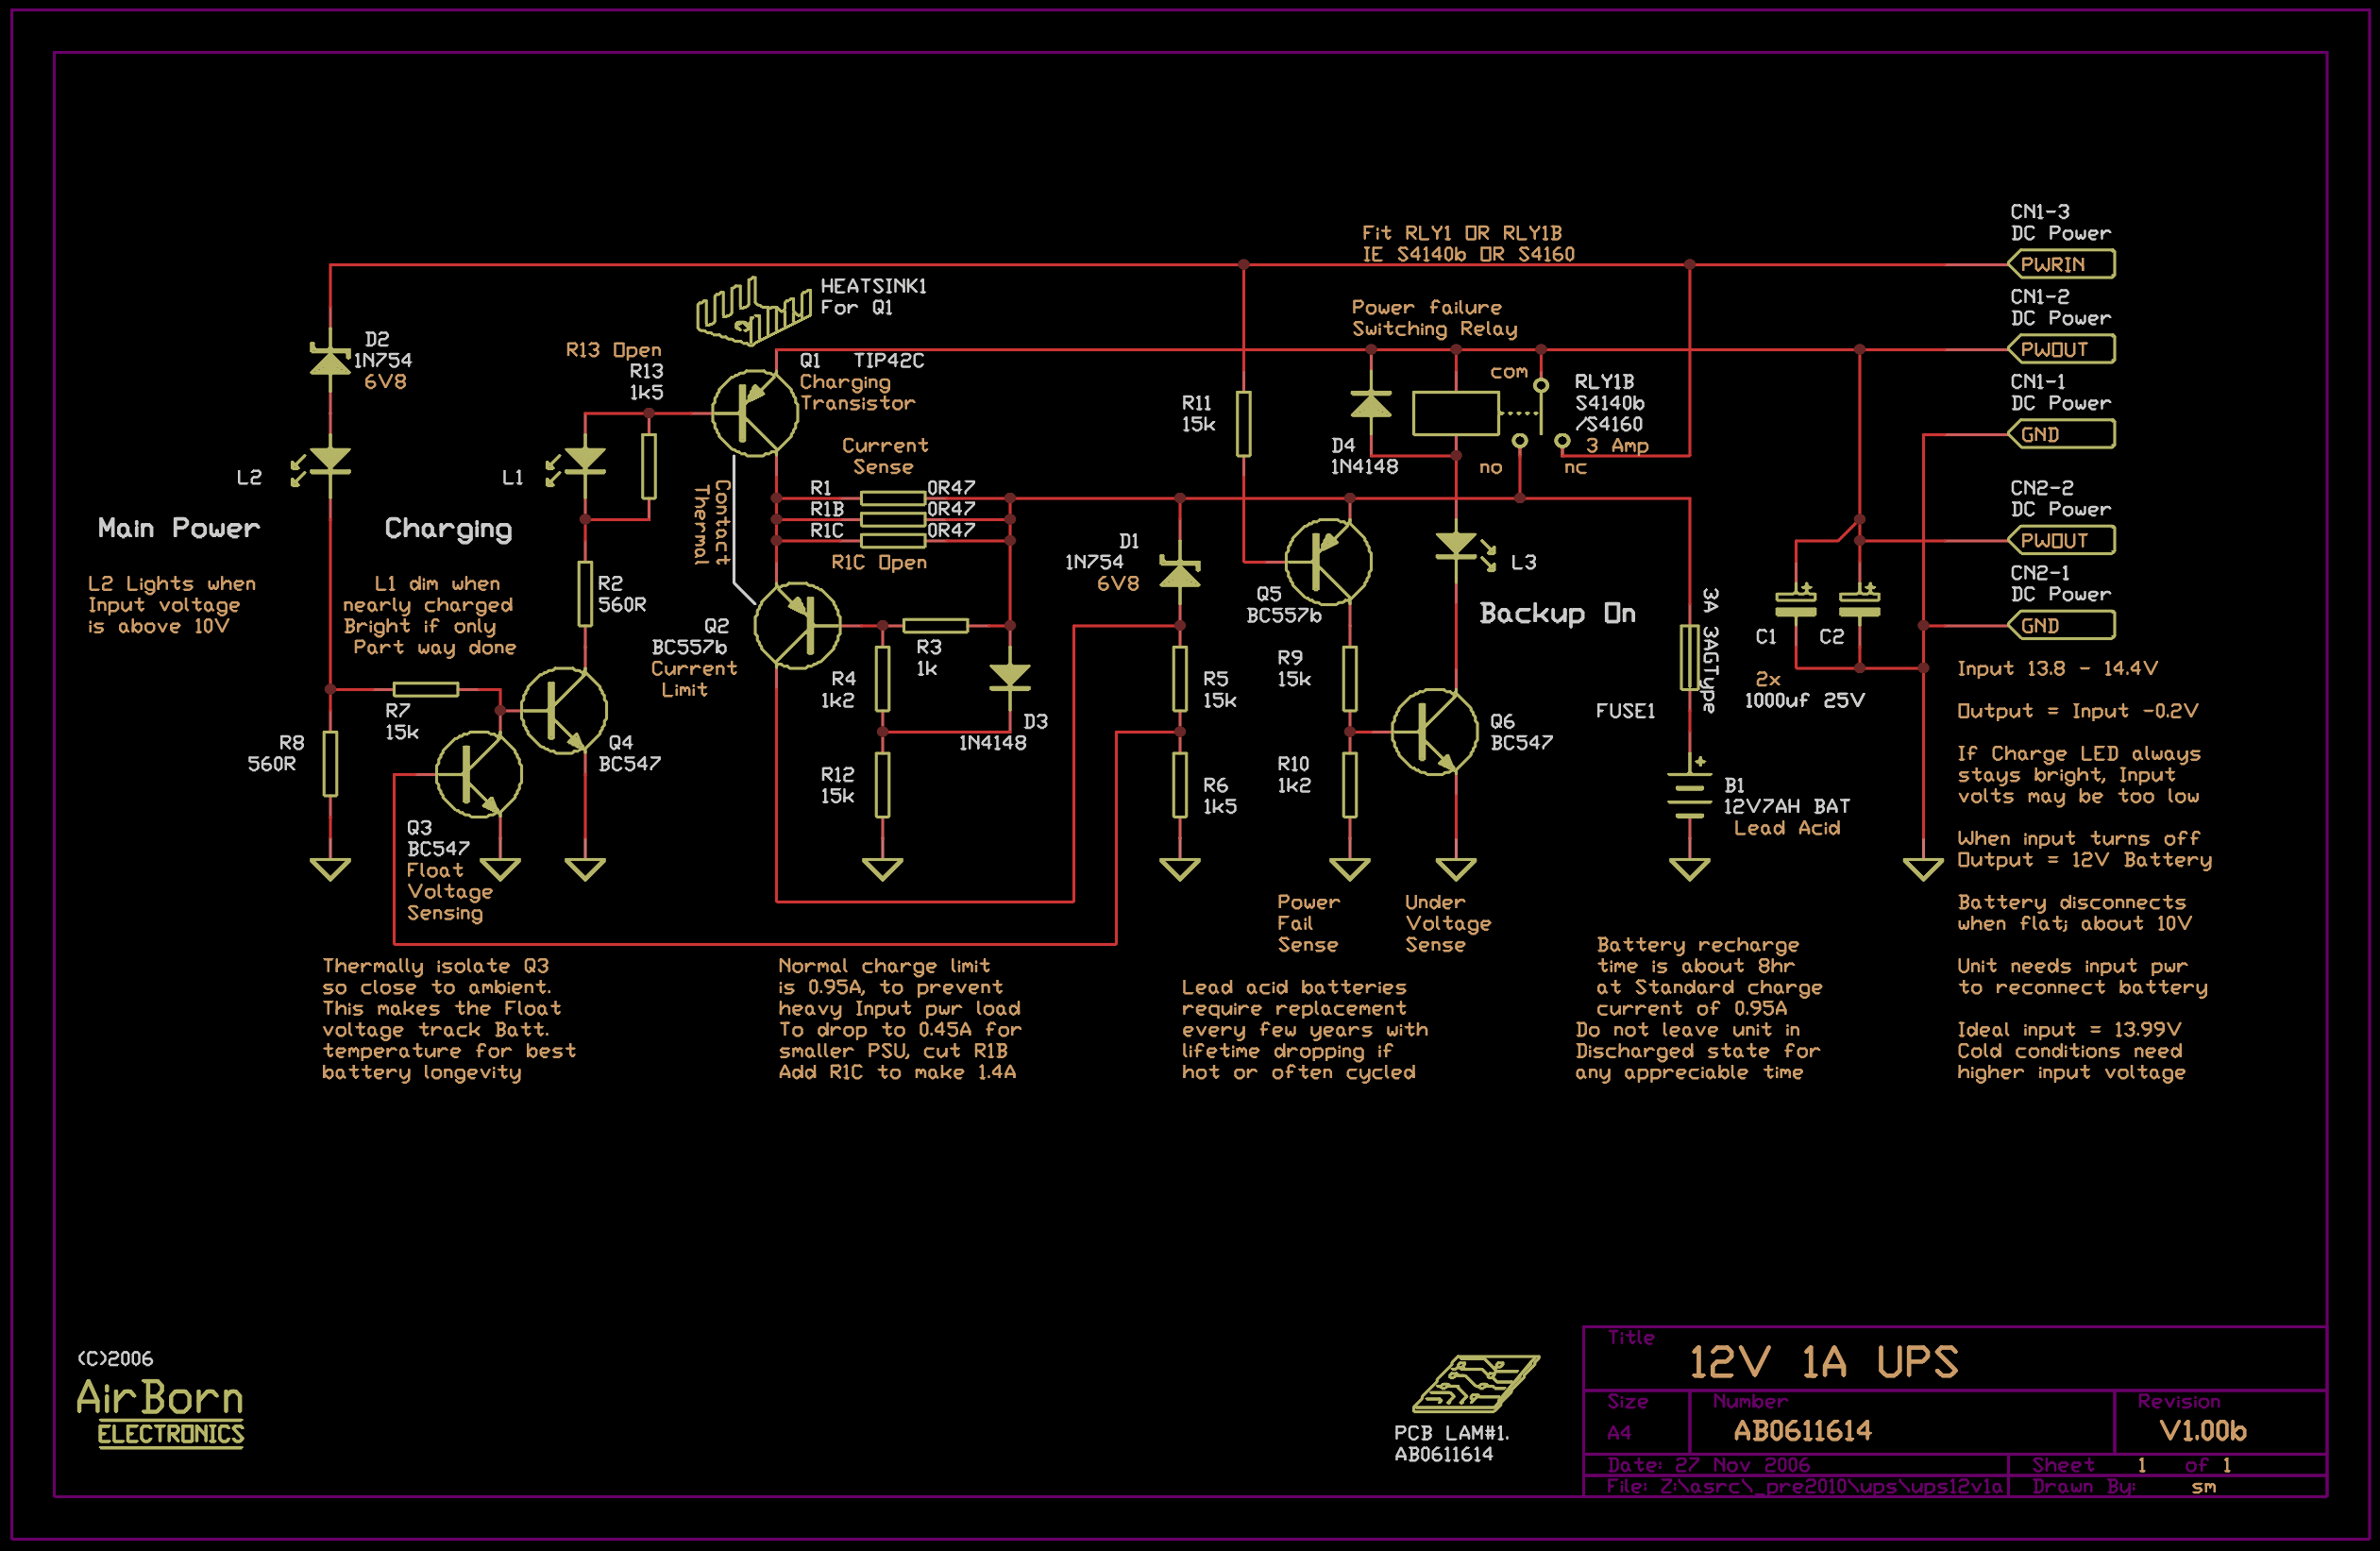 Apc Ups Circuit Diagram Pdf